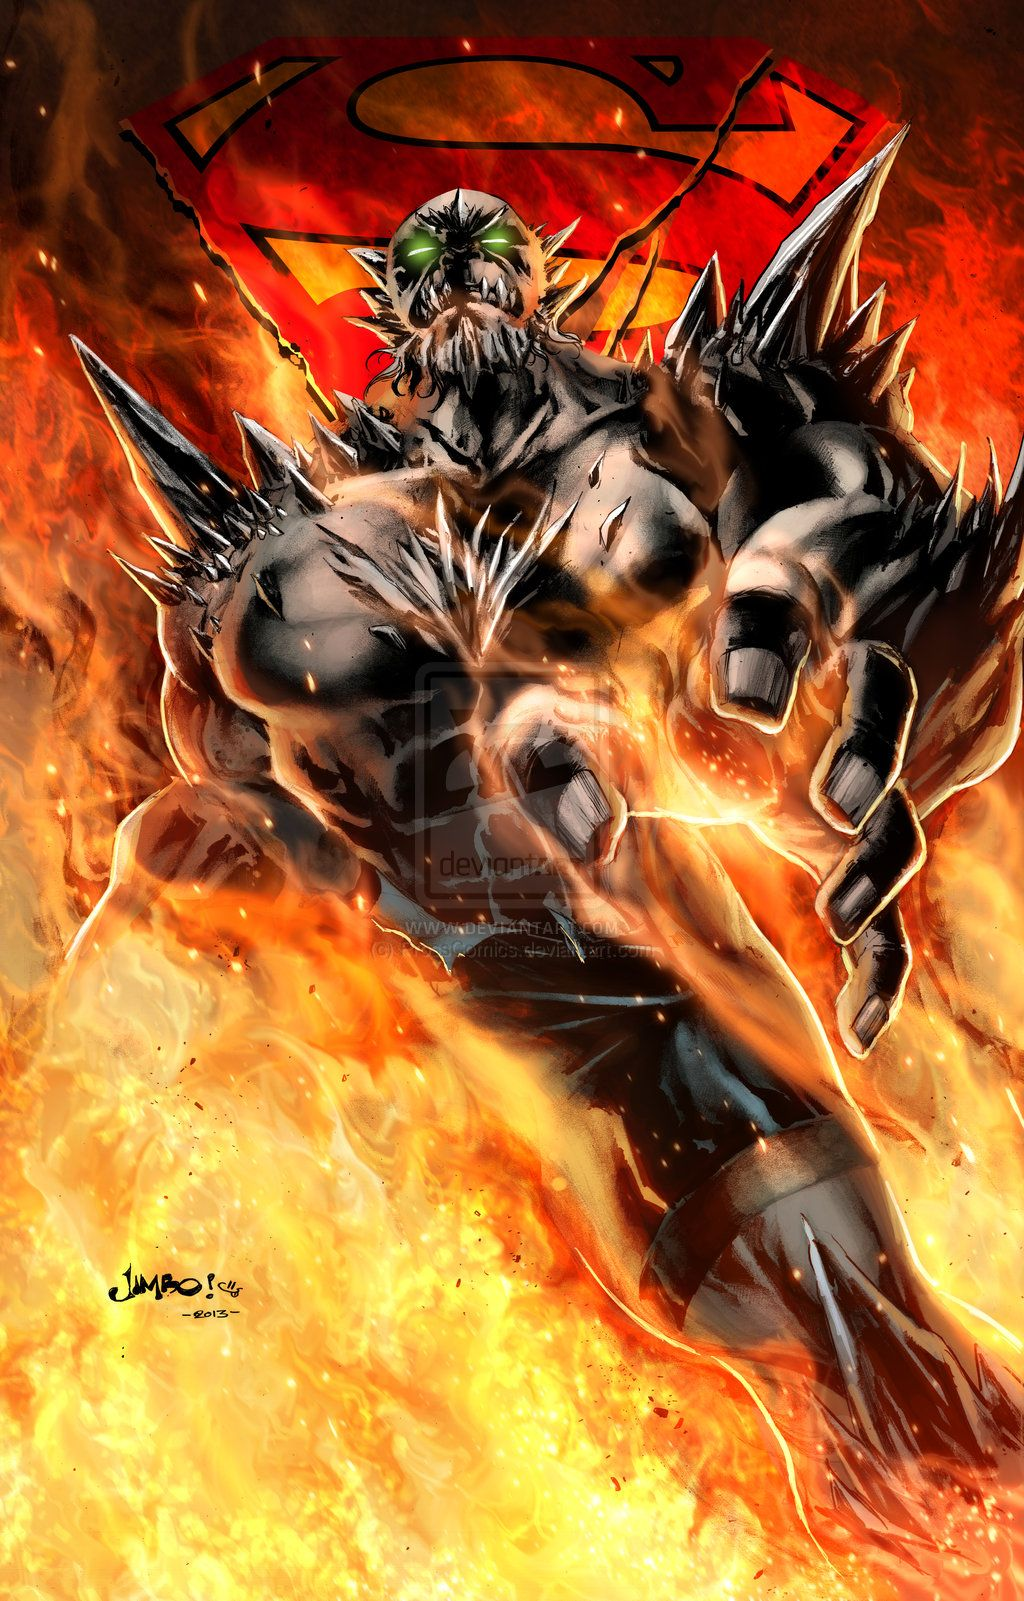 Doomsday By Jimbo Salgado John Pross Prosscomics On